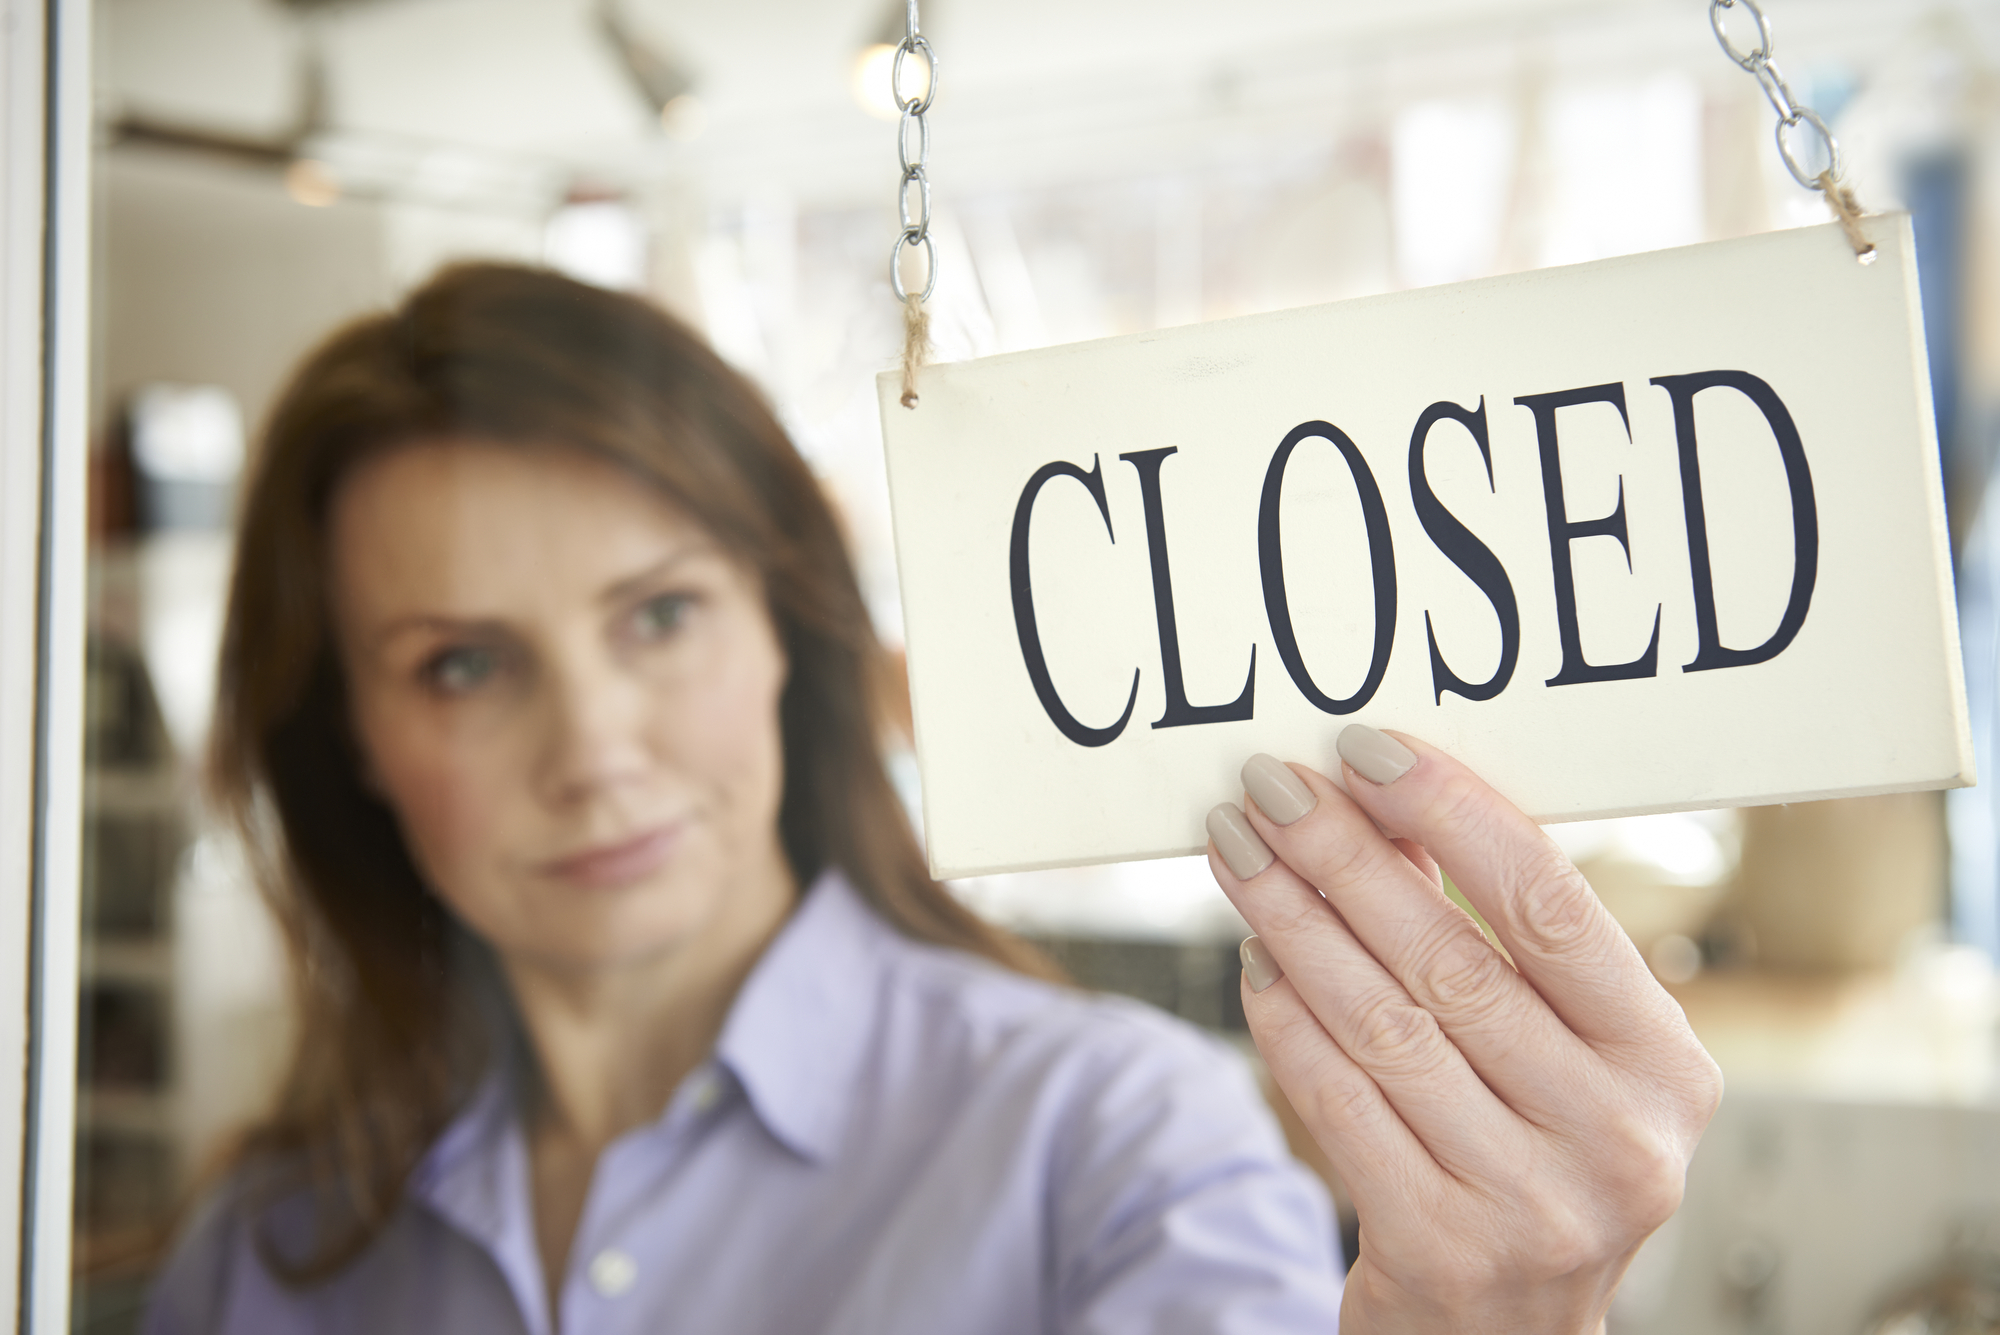 When a business closes, a liquidation service can help get rid of physical assets